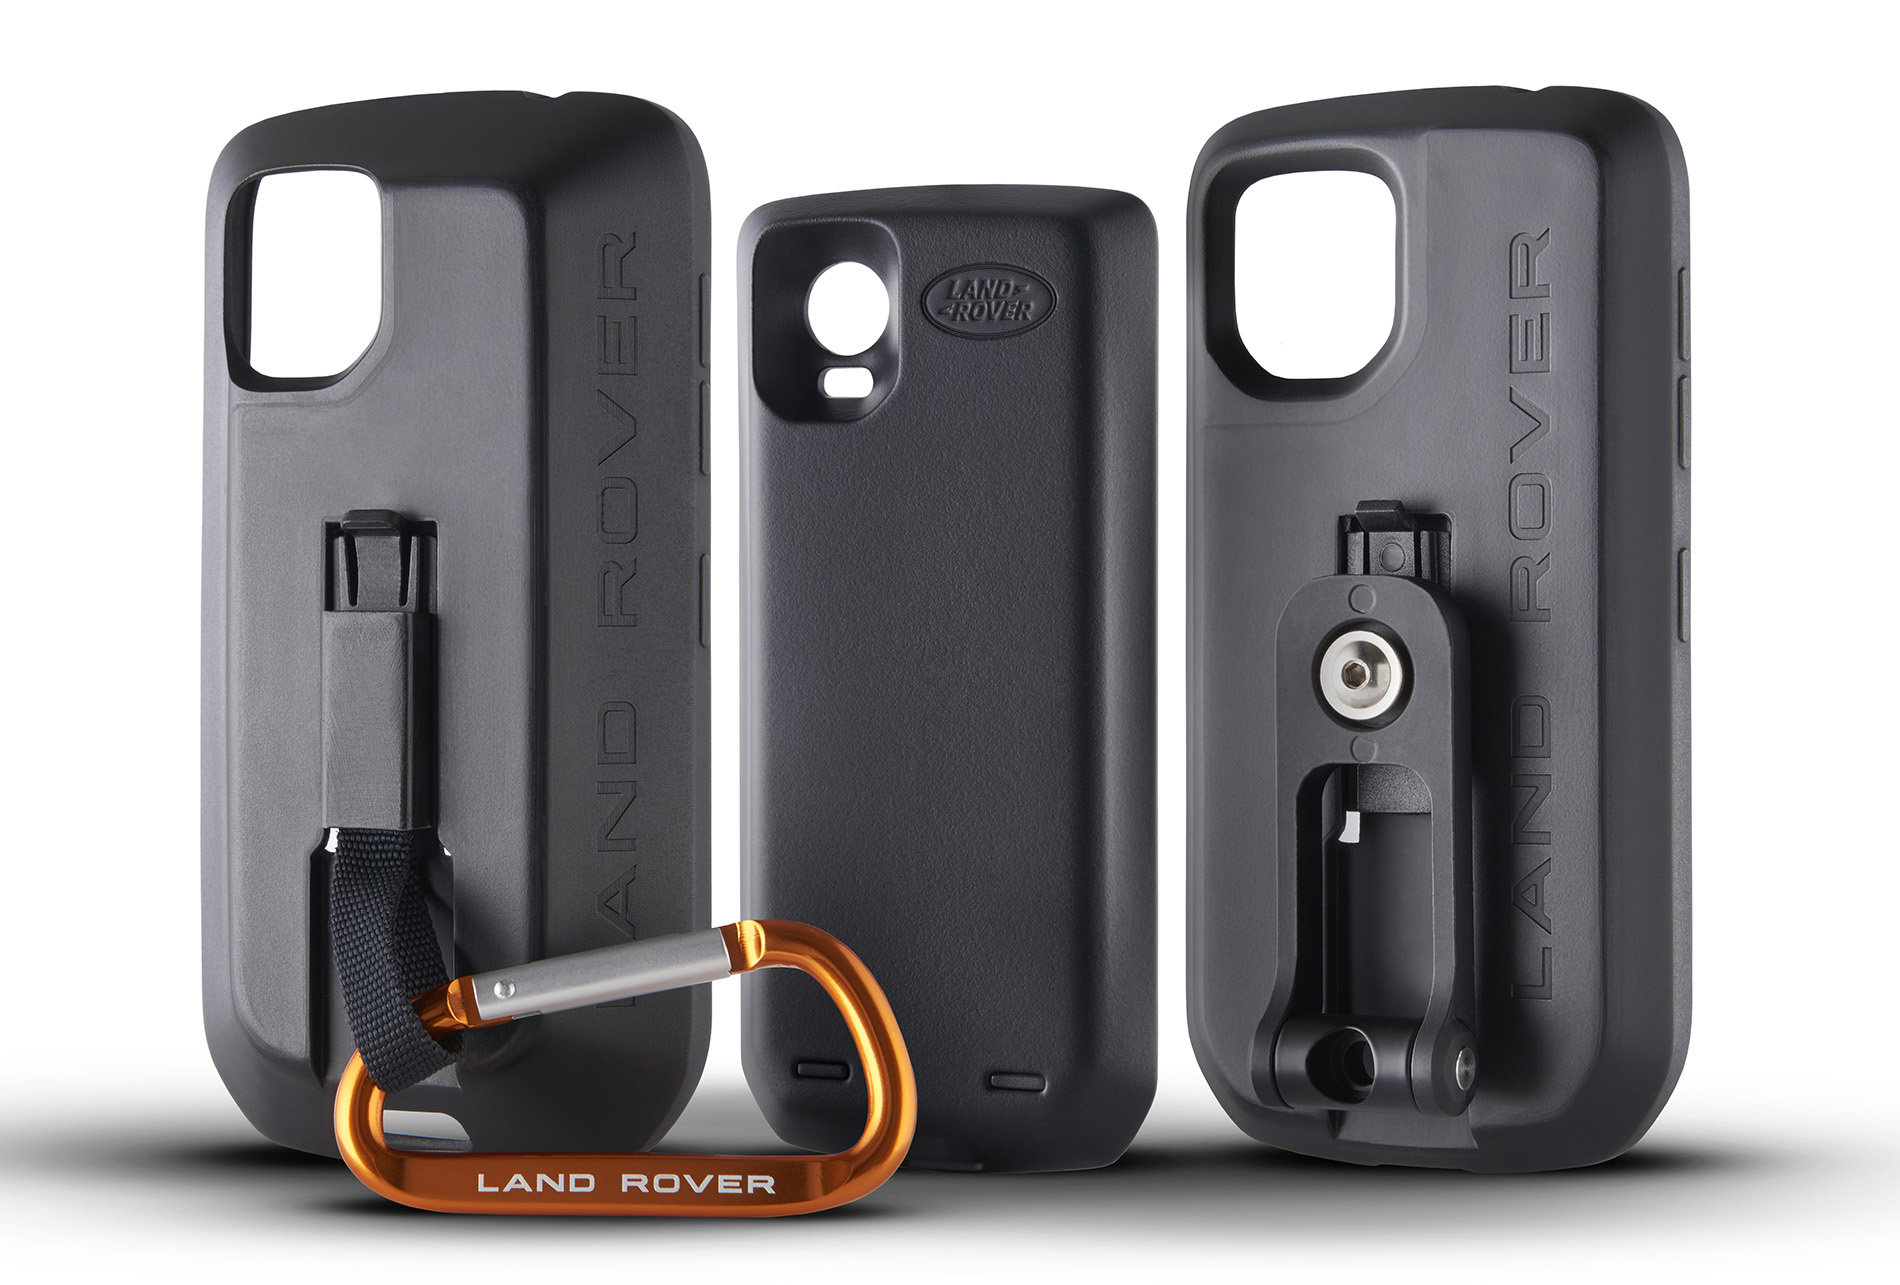 Neues Land Rover Explore Outdoor Smartphone Mit